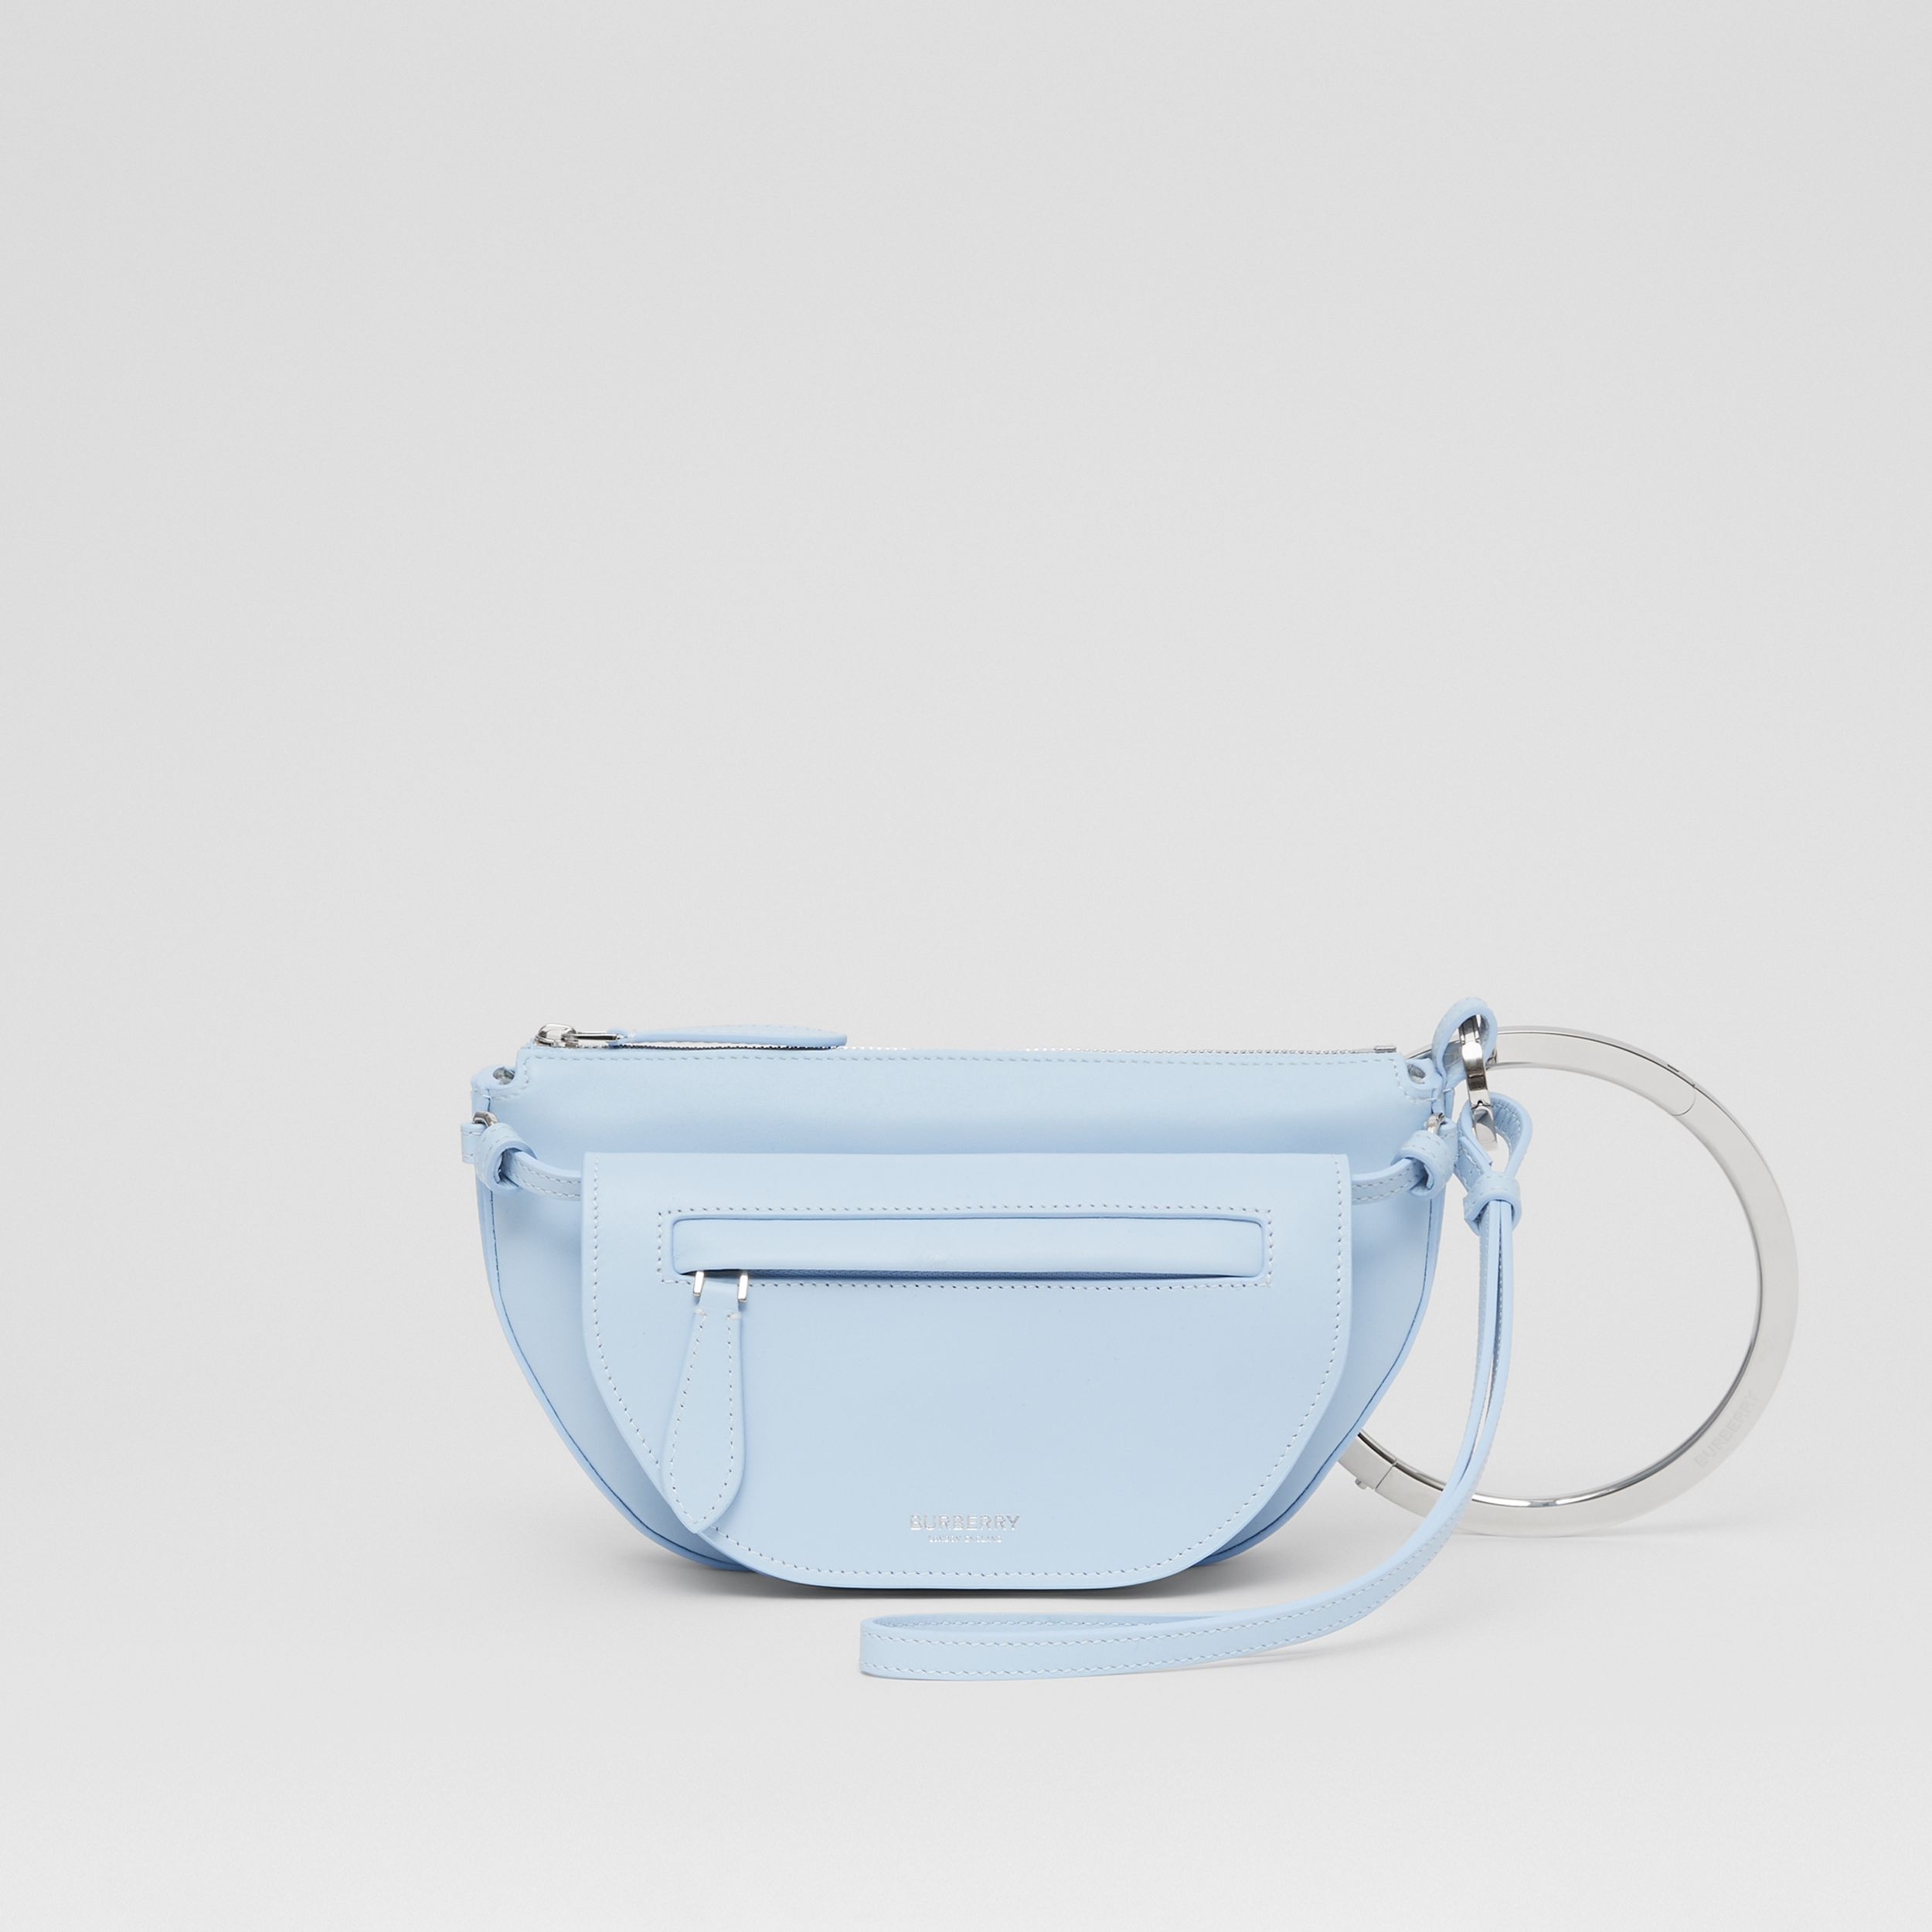 Mini Leather Double Olympia Bag in Pale Blue - Women | Burberry - 1